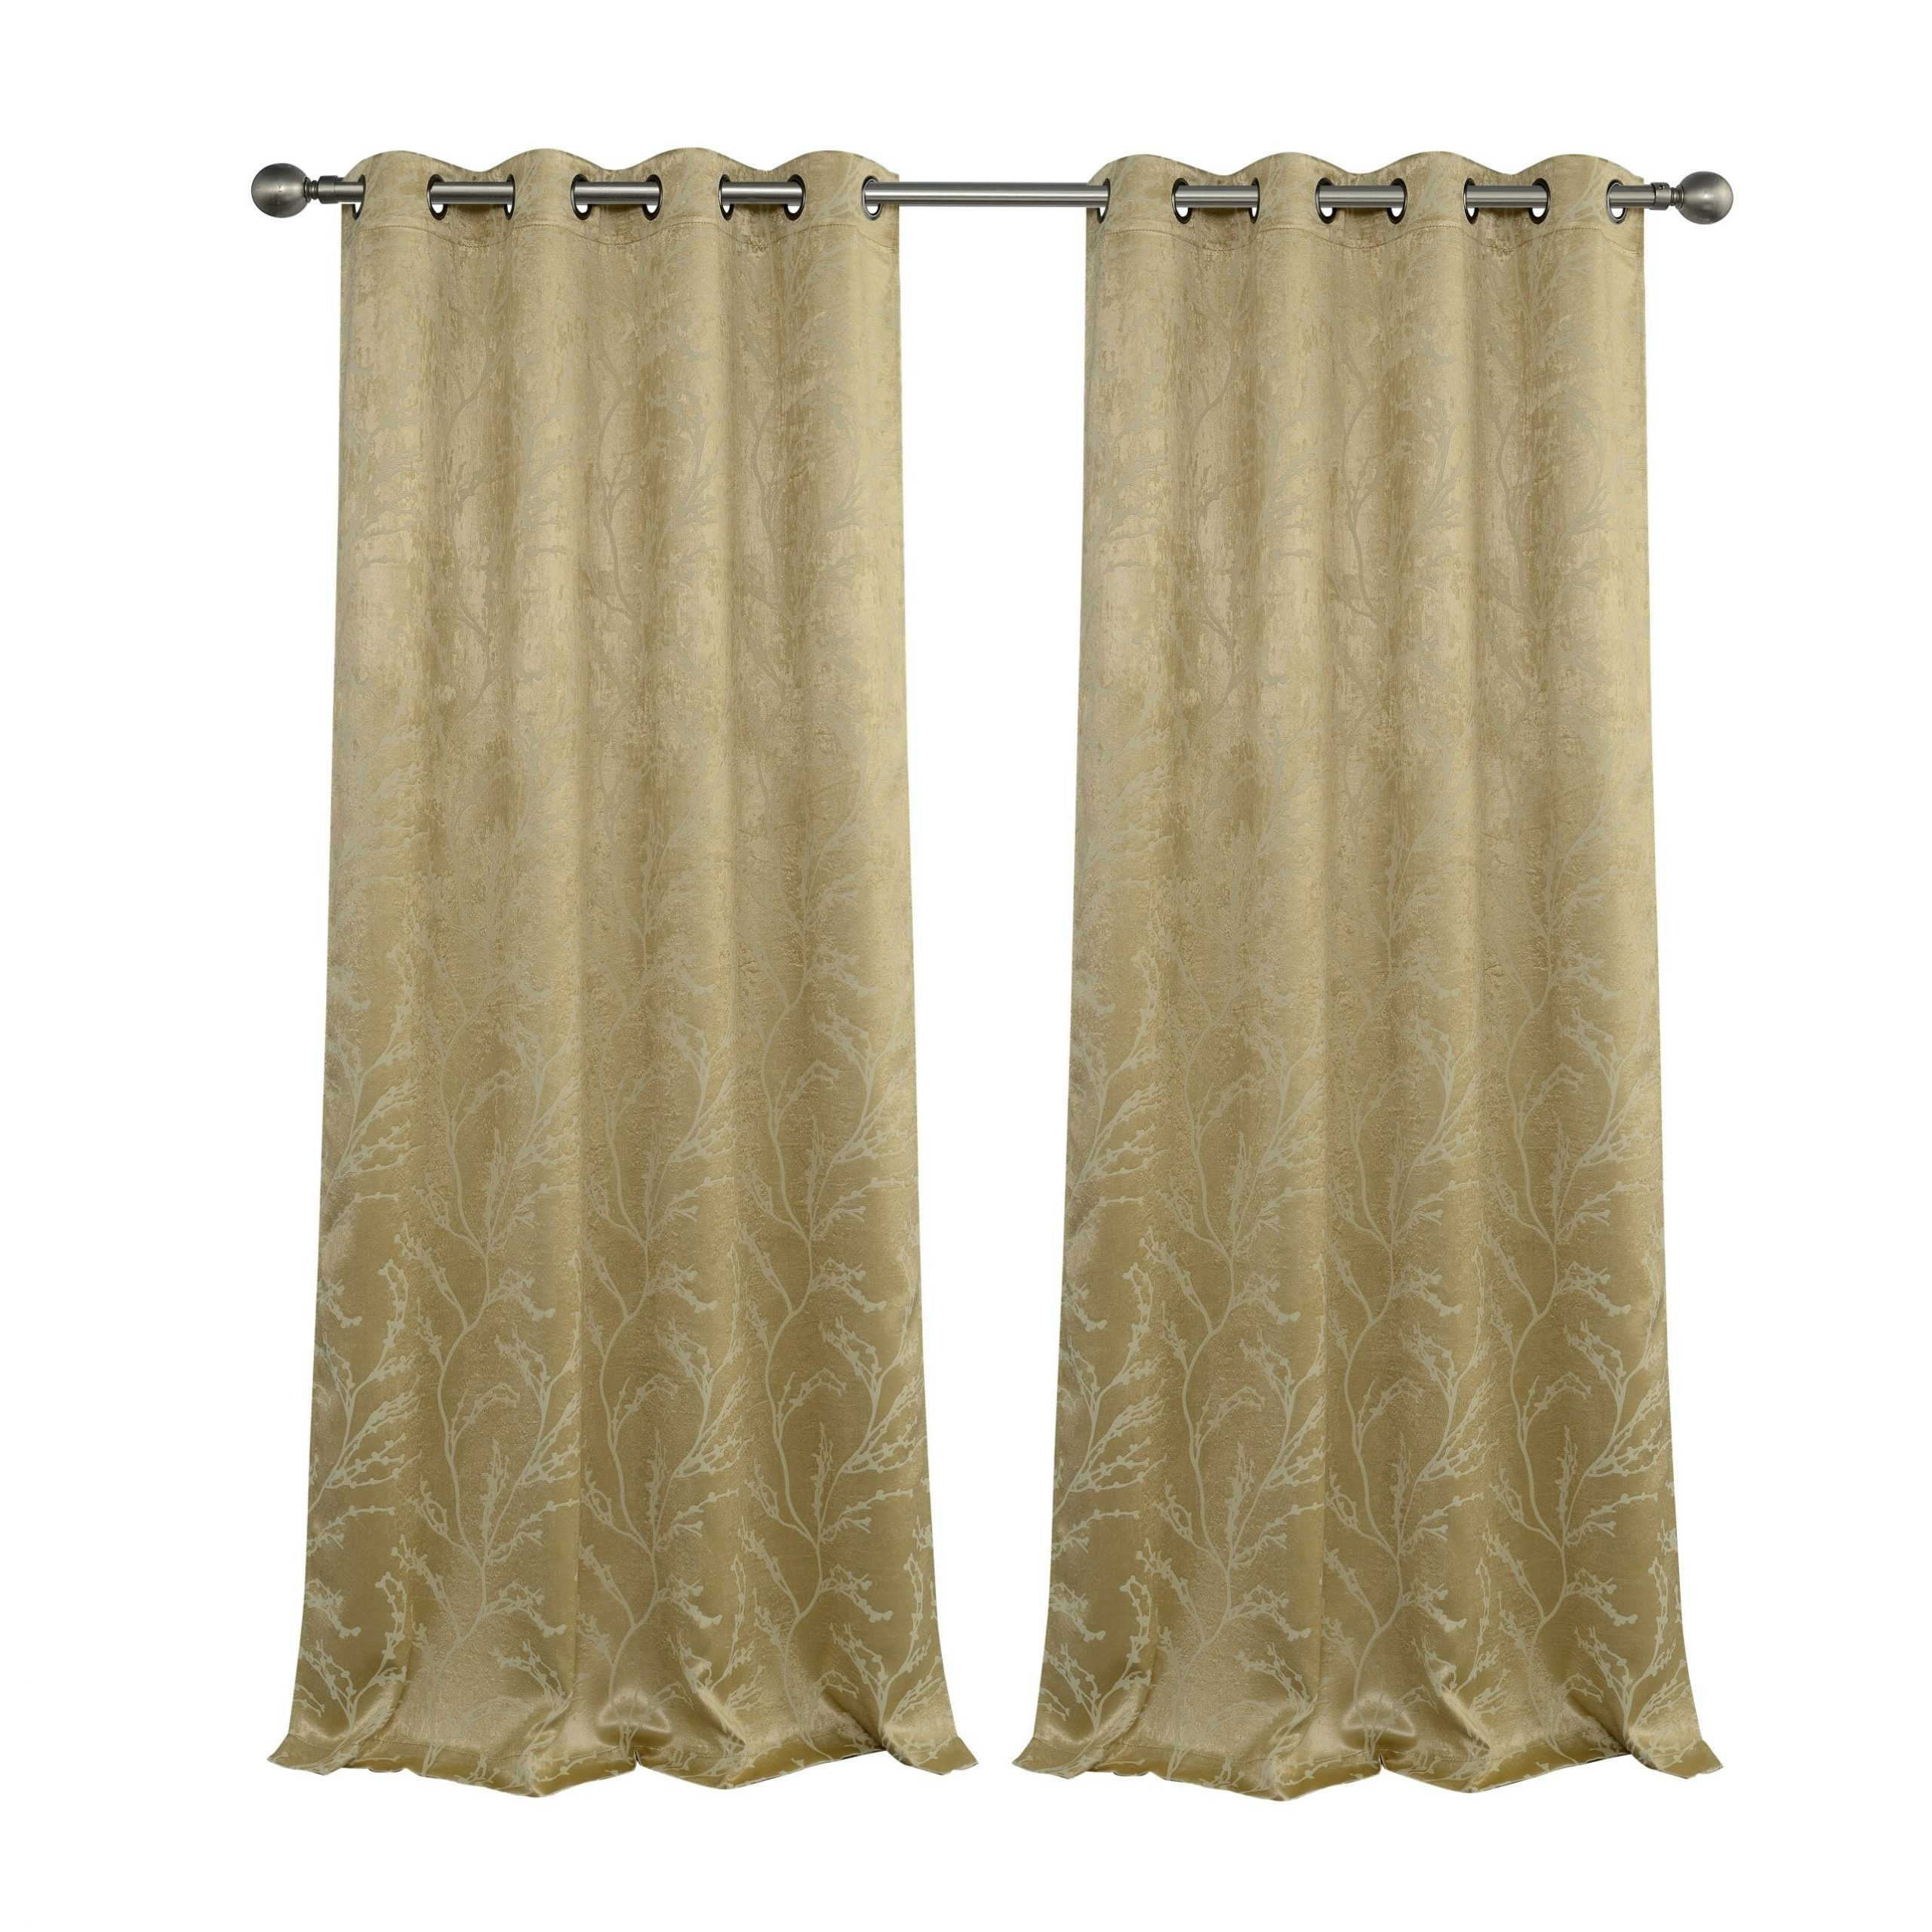 Inoue Reversible Top Floral Blackout Thermal Grommet Curtain Panels With Regard To Most Current Twig Insulated Blackout Curtain Panel Pairs With Grommet Top (View 15 of 20)